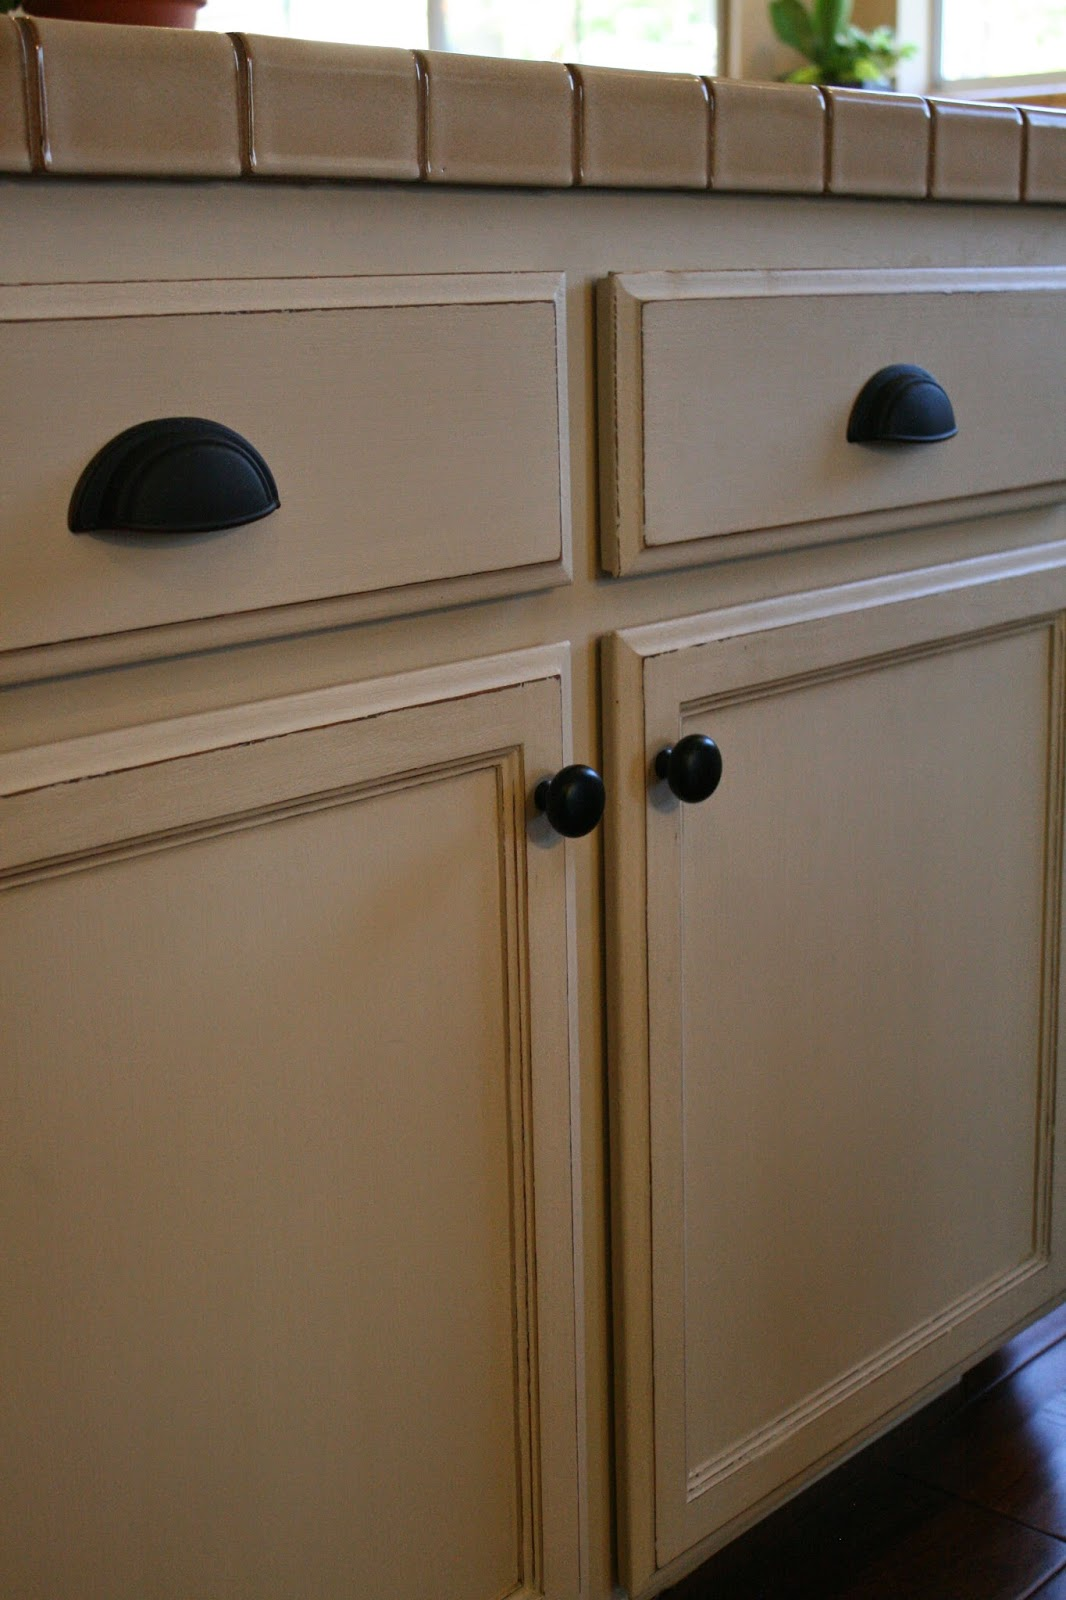 Rubbish Amazing Chalk Paint? Transformation on Oak Kitchen Cabinets